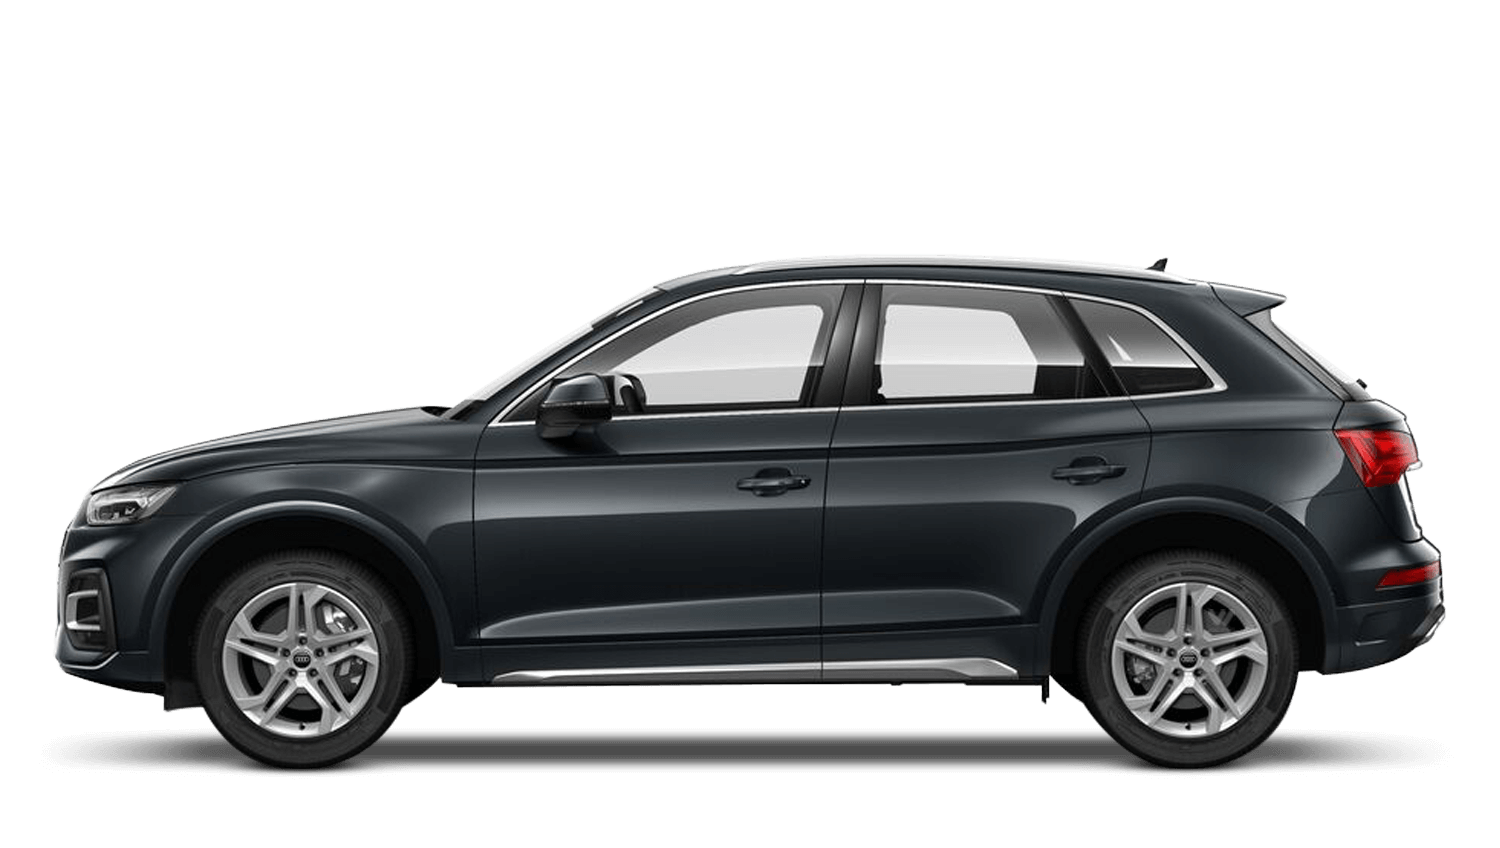 Manhattan Grey (Metallic) Audi Q5